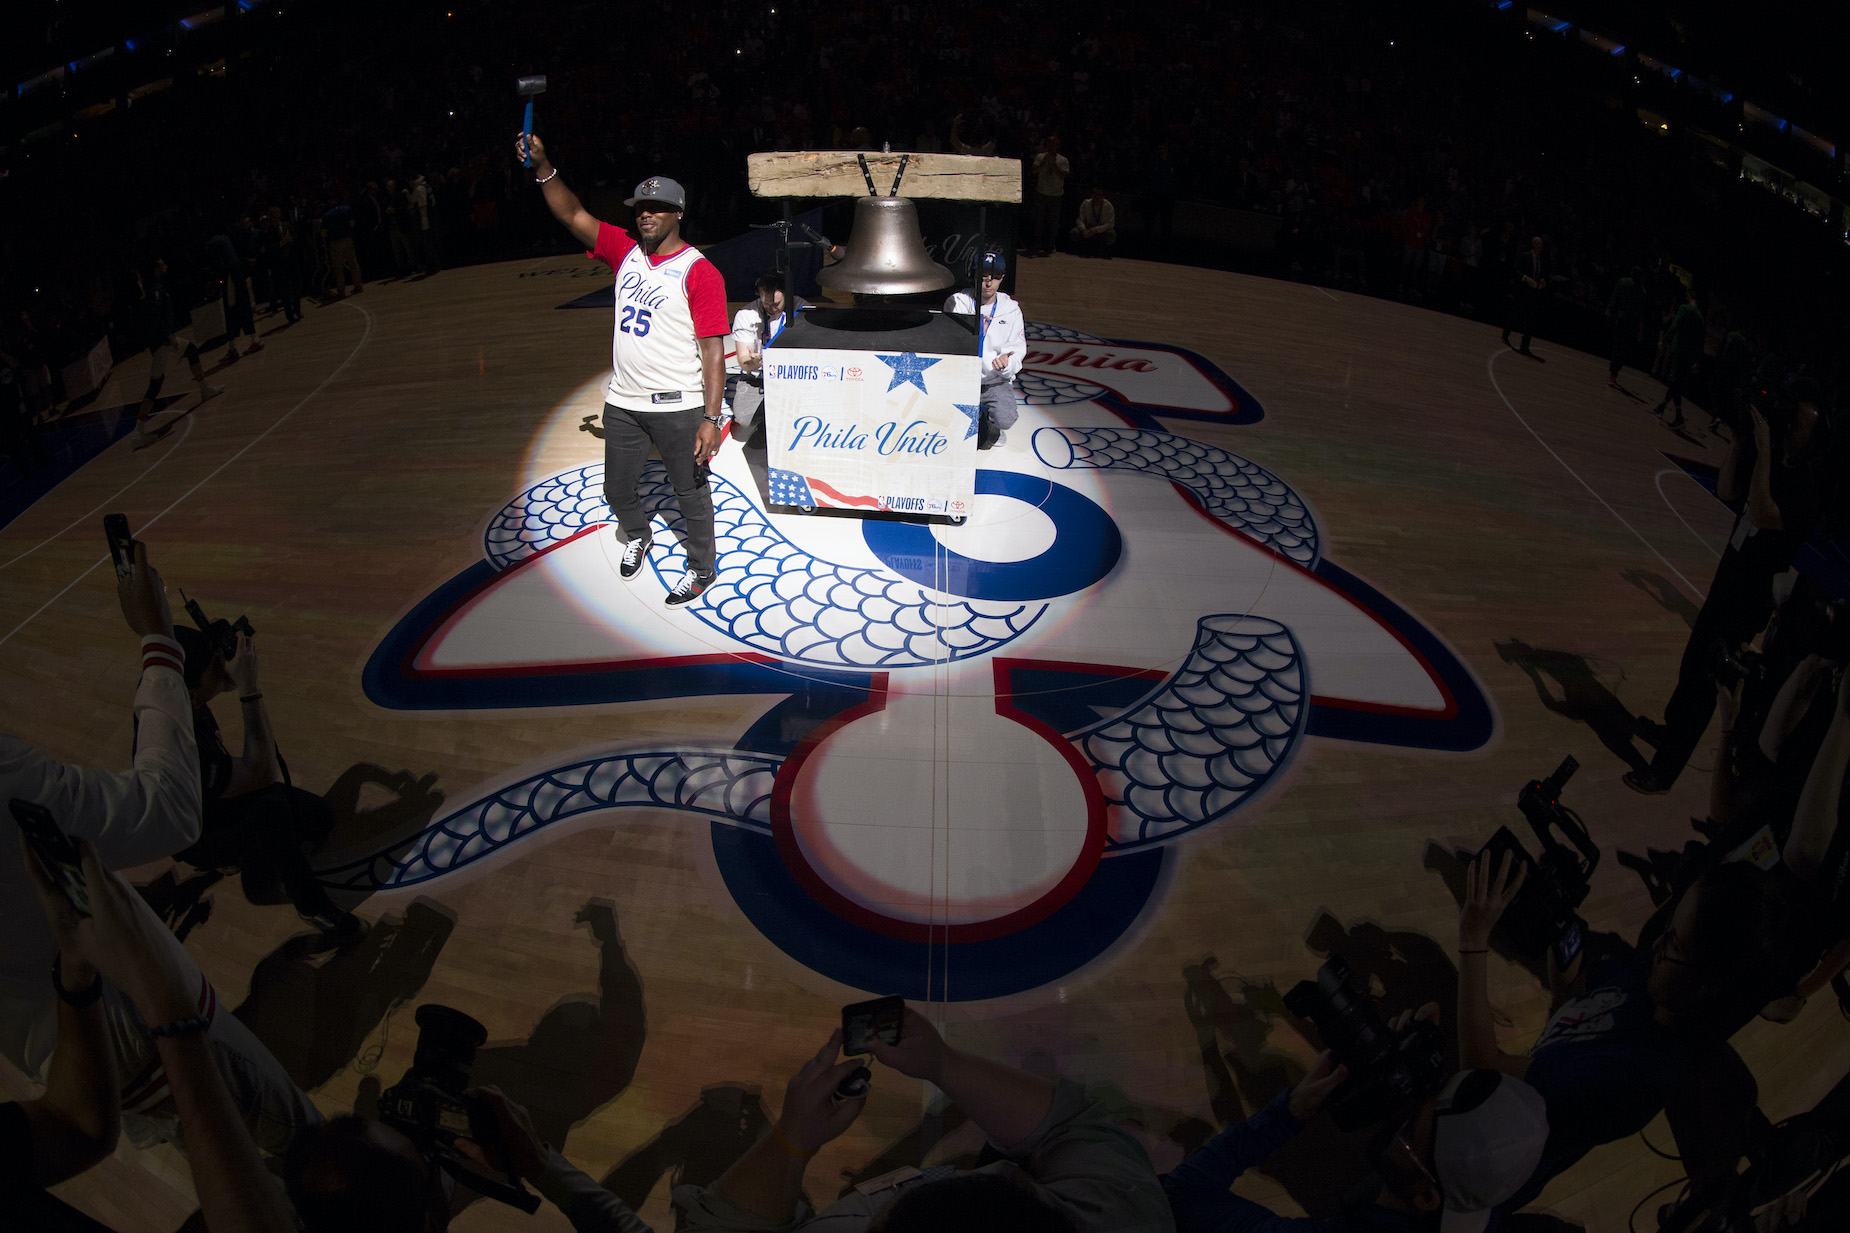 Why Do the Philadelphia 76ers Have a Snake on Their Court?